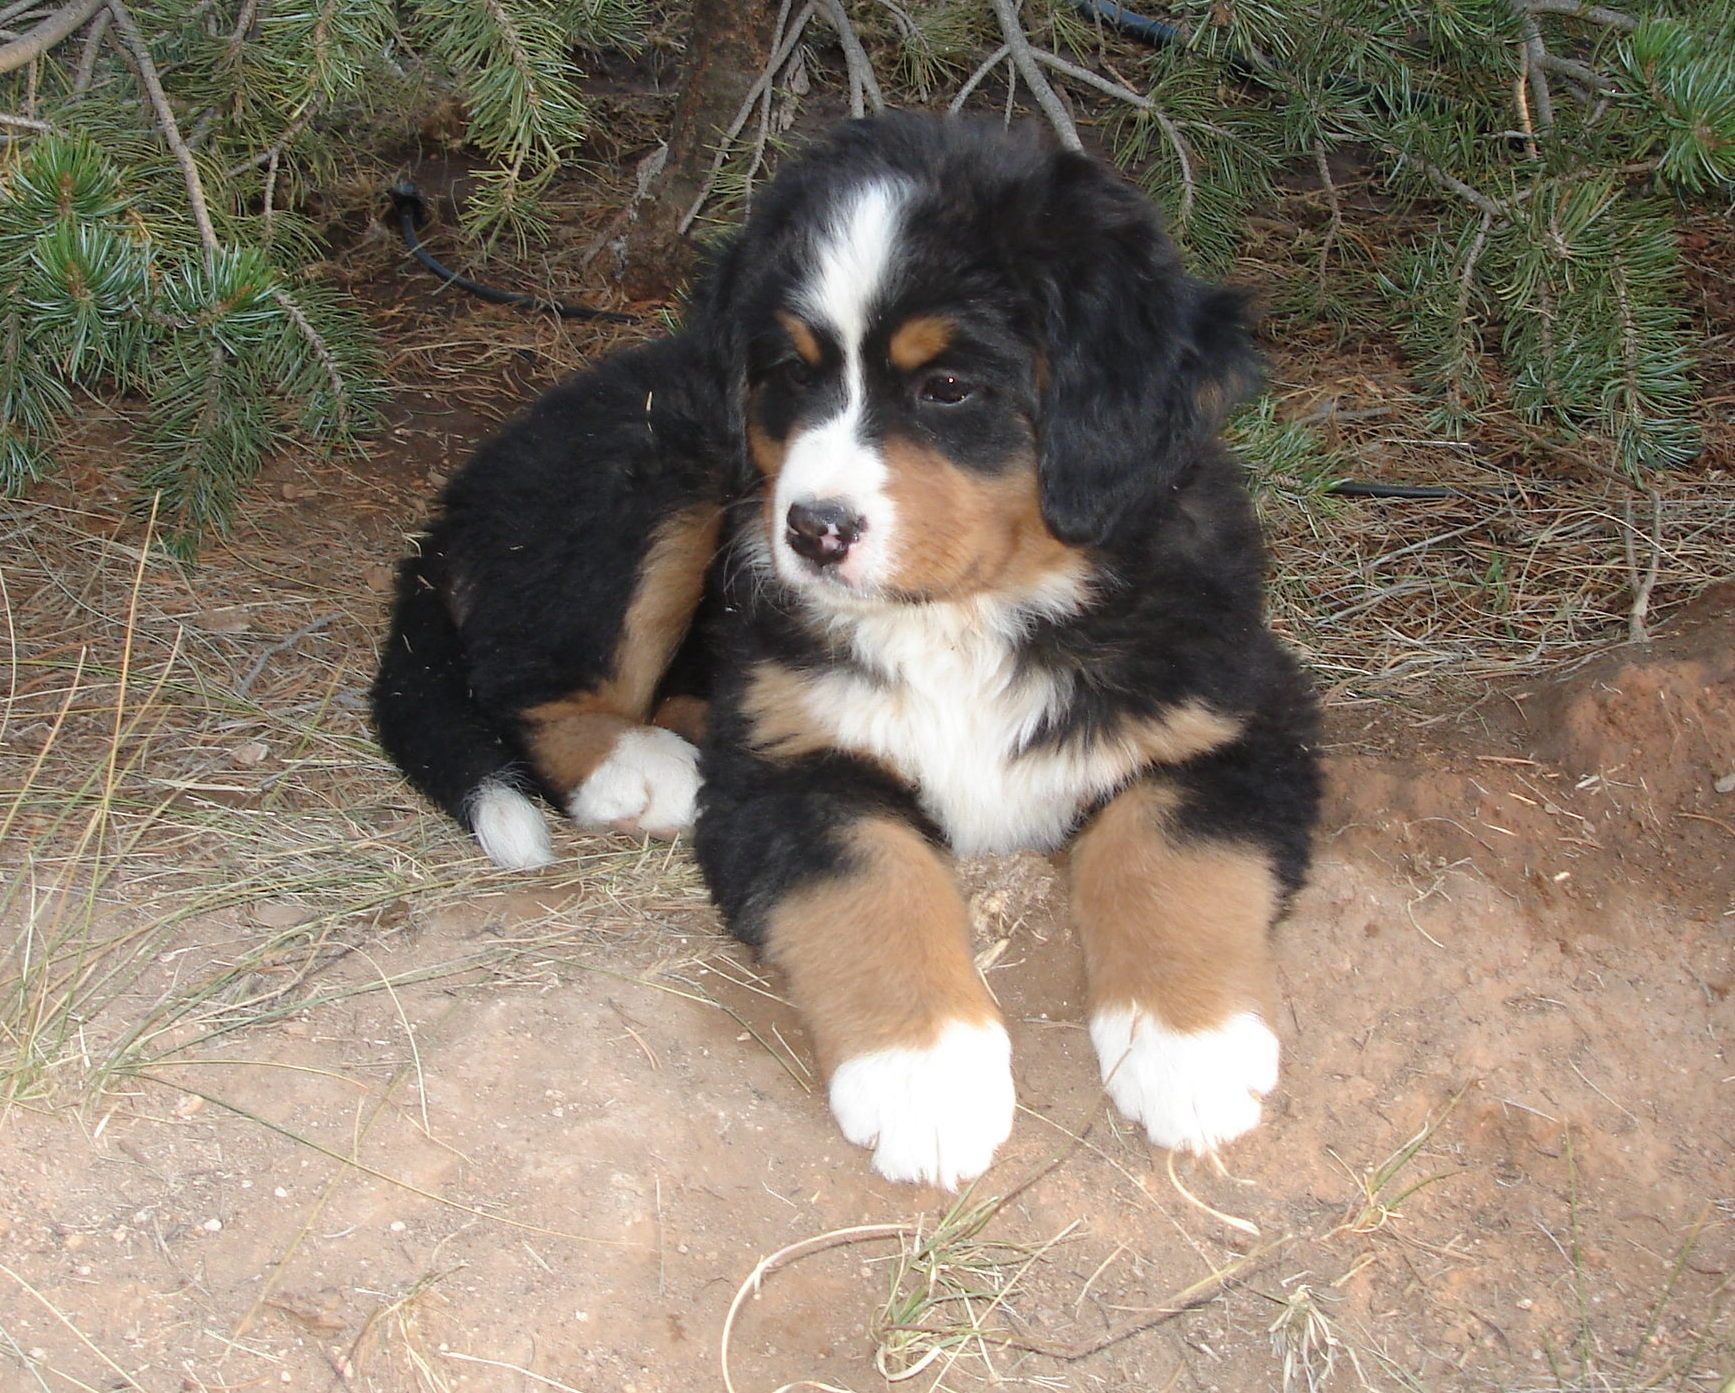 puppies and pines Puppies, Bernese mountain dog puppy